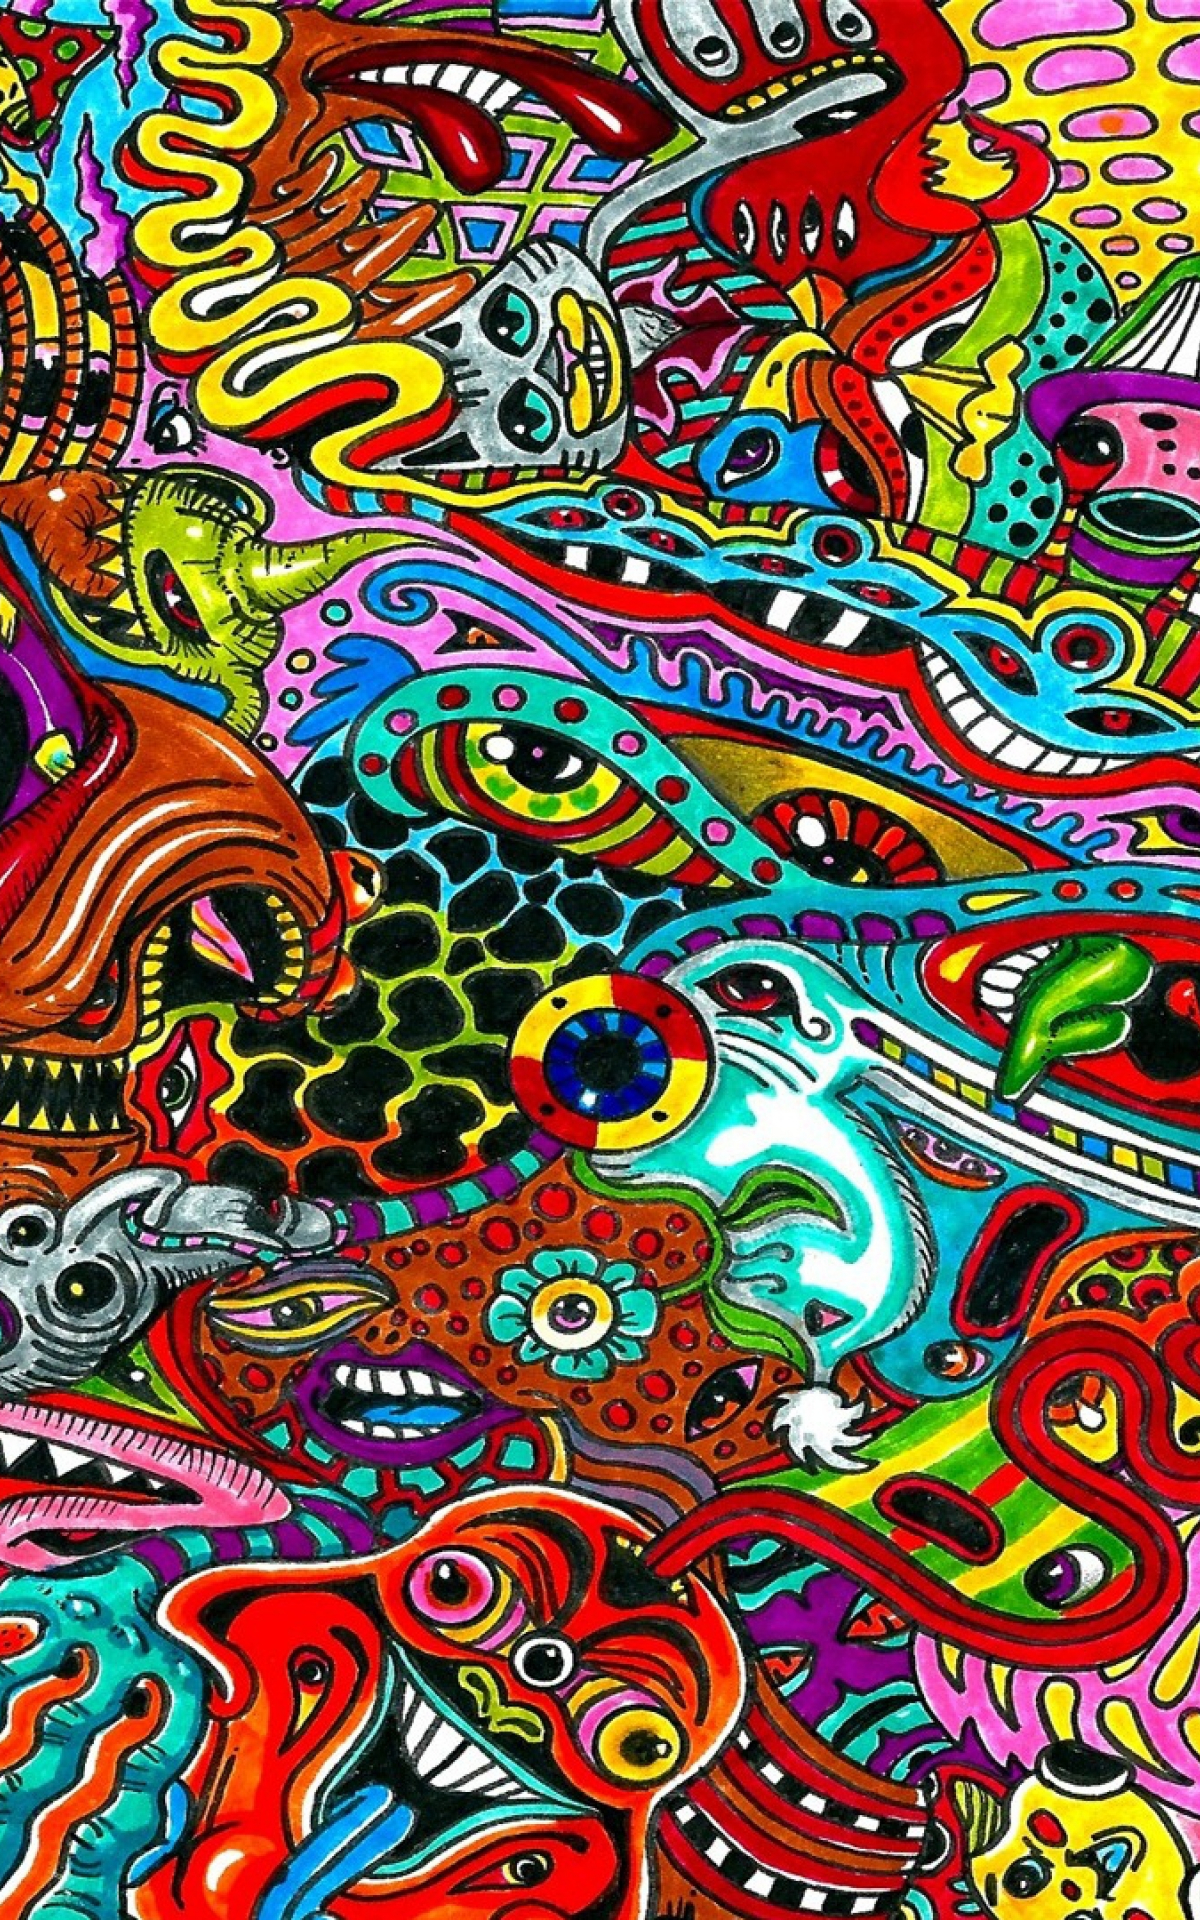 Free Download Surreal Colorful Psychedelic Wallpaper